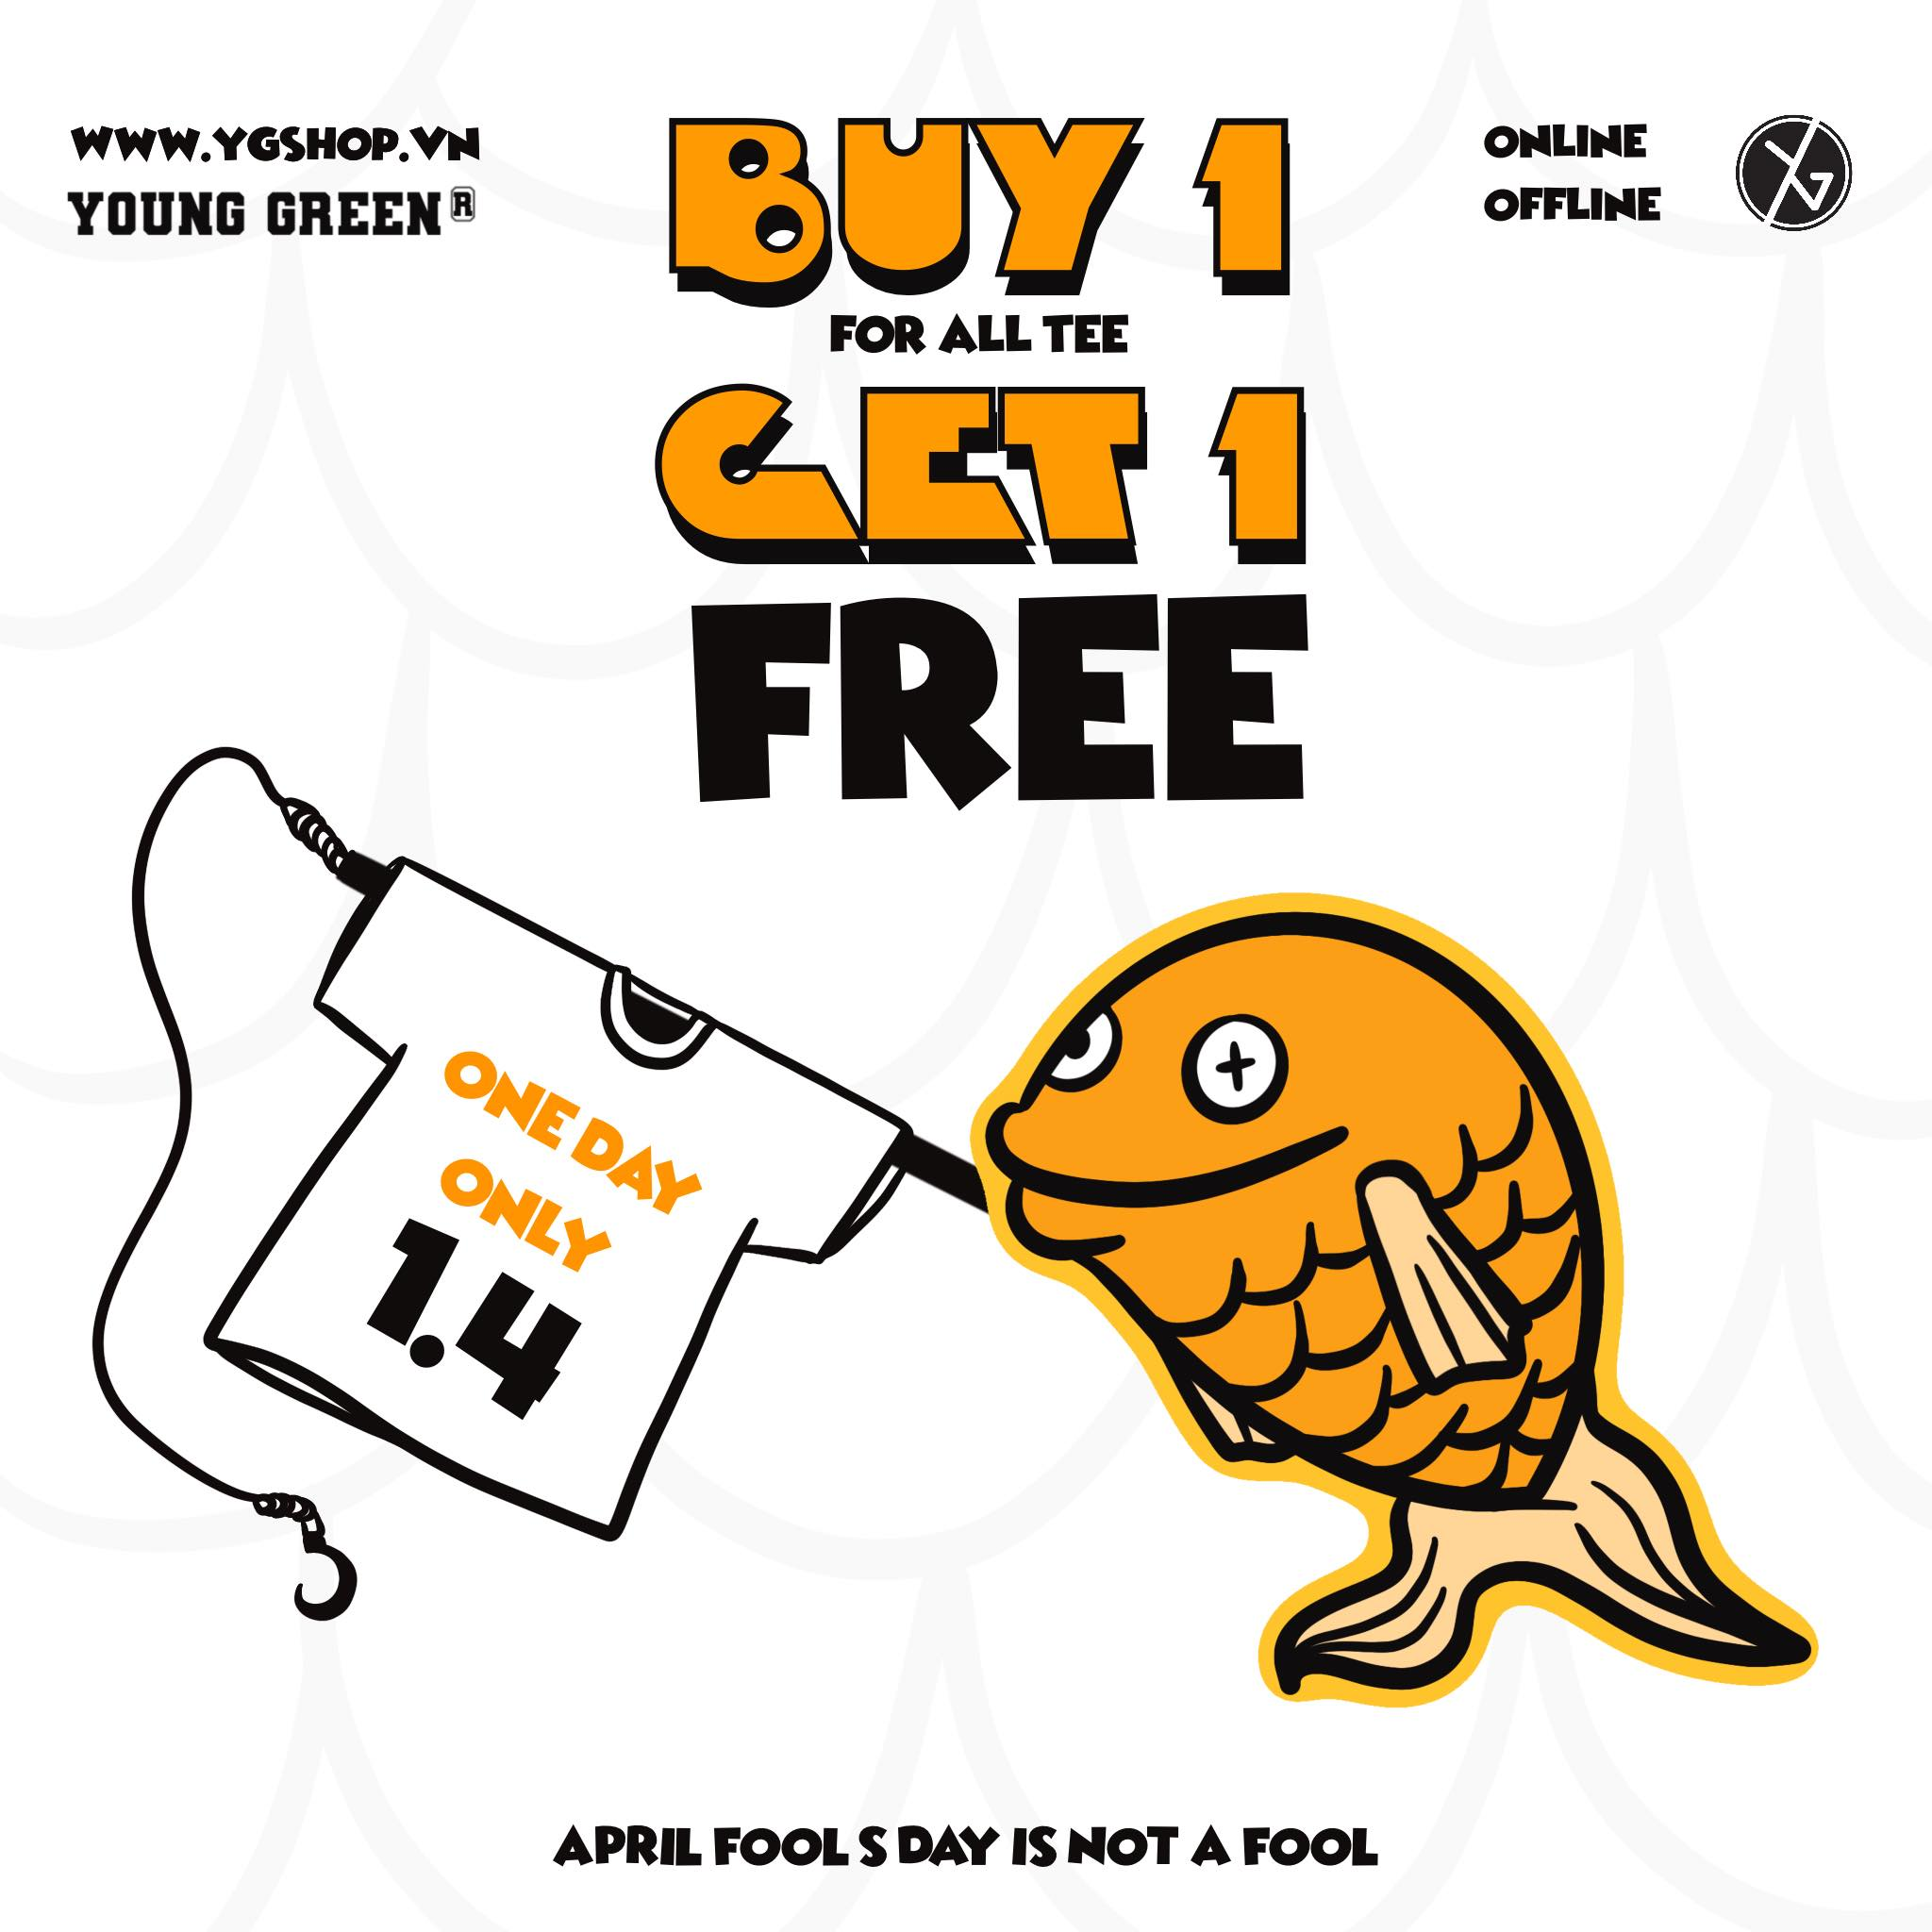 NOW OR NEVER - BUY 1 GET 1 FREE